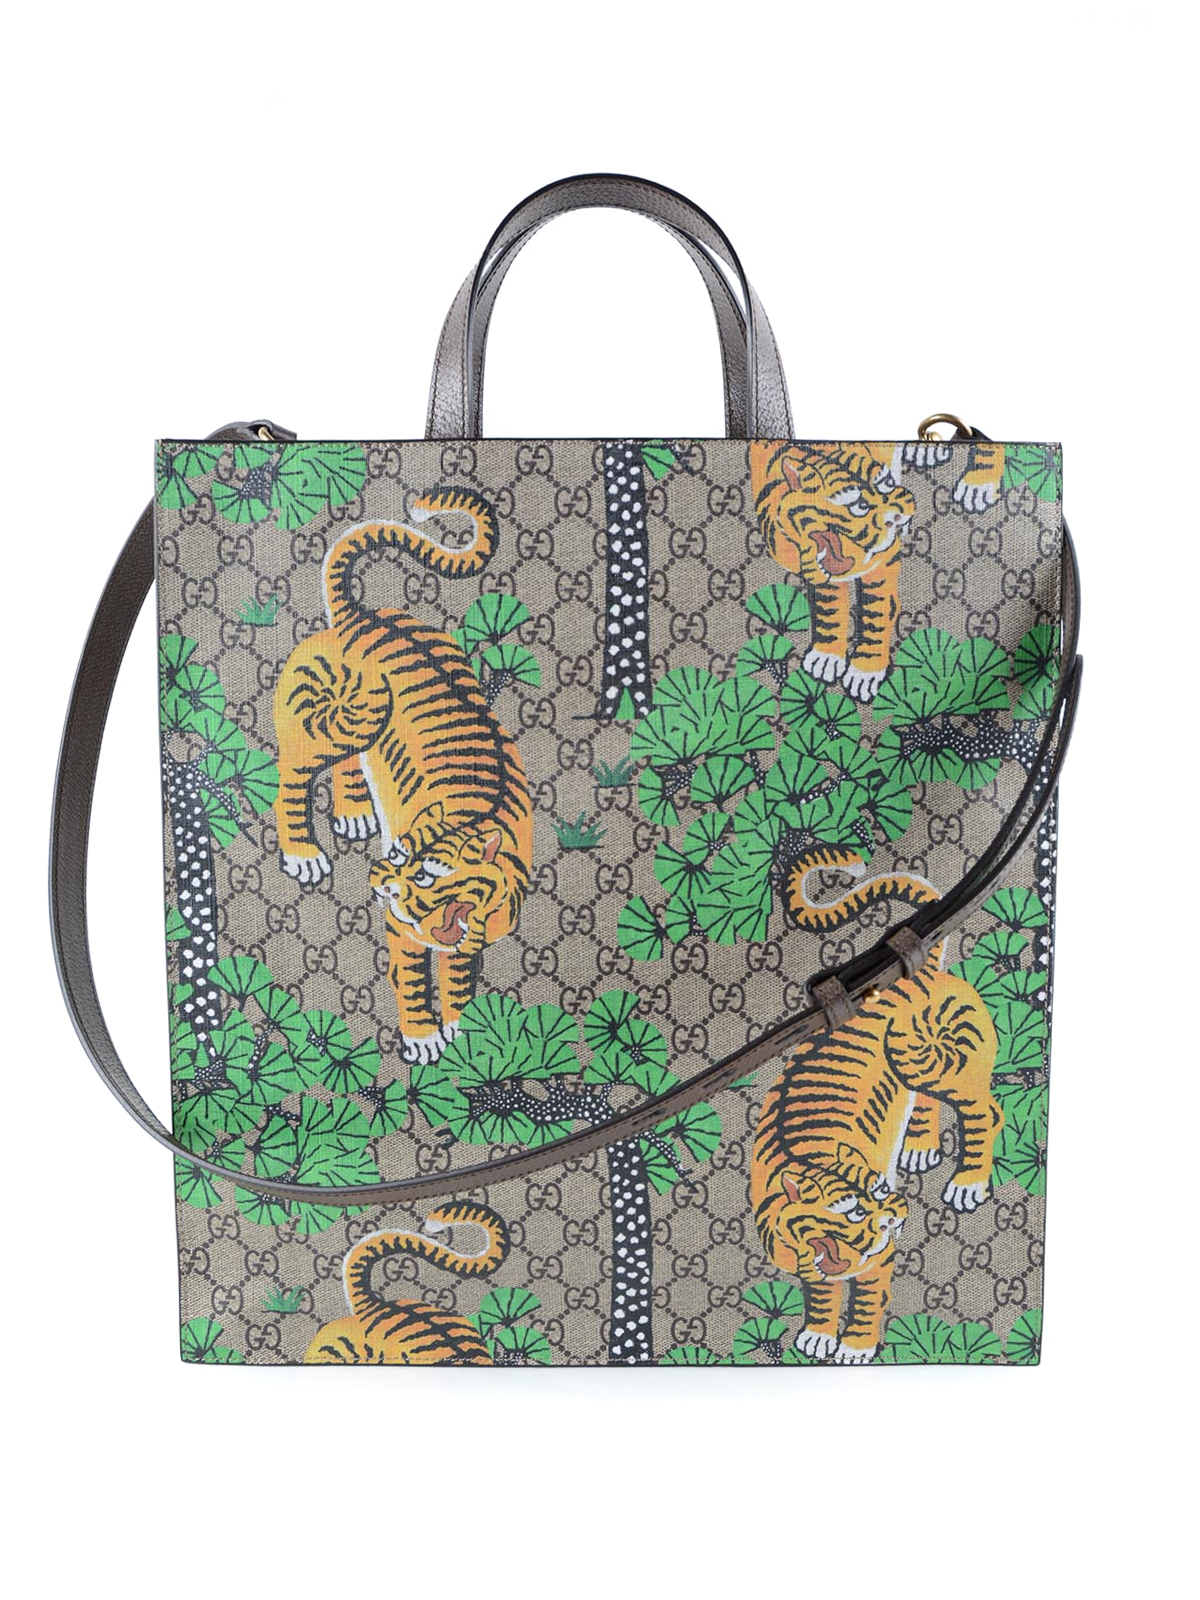 084a0aebbbc7 Gucci Tote Bag Bengal Print | Stanford Center for Opportunity Policy ...